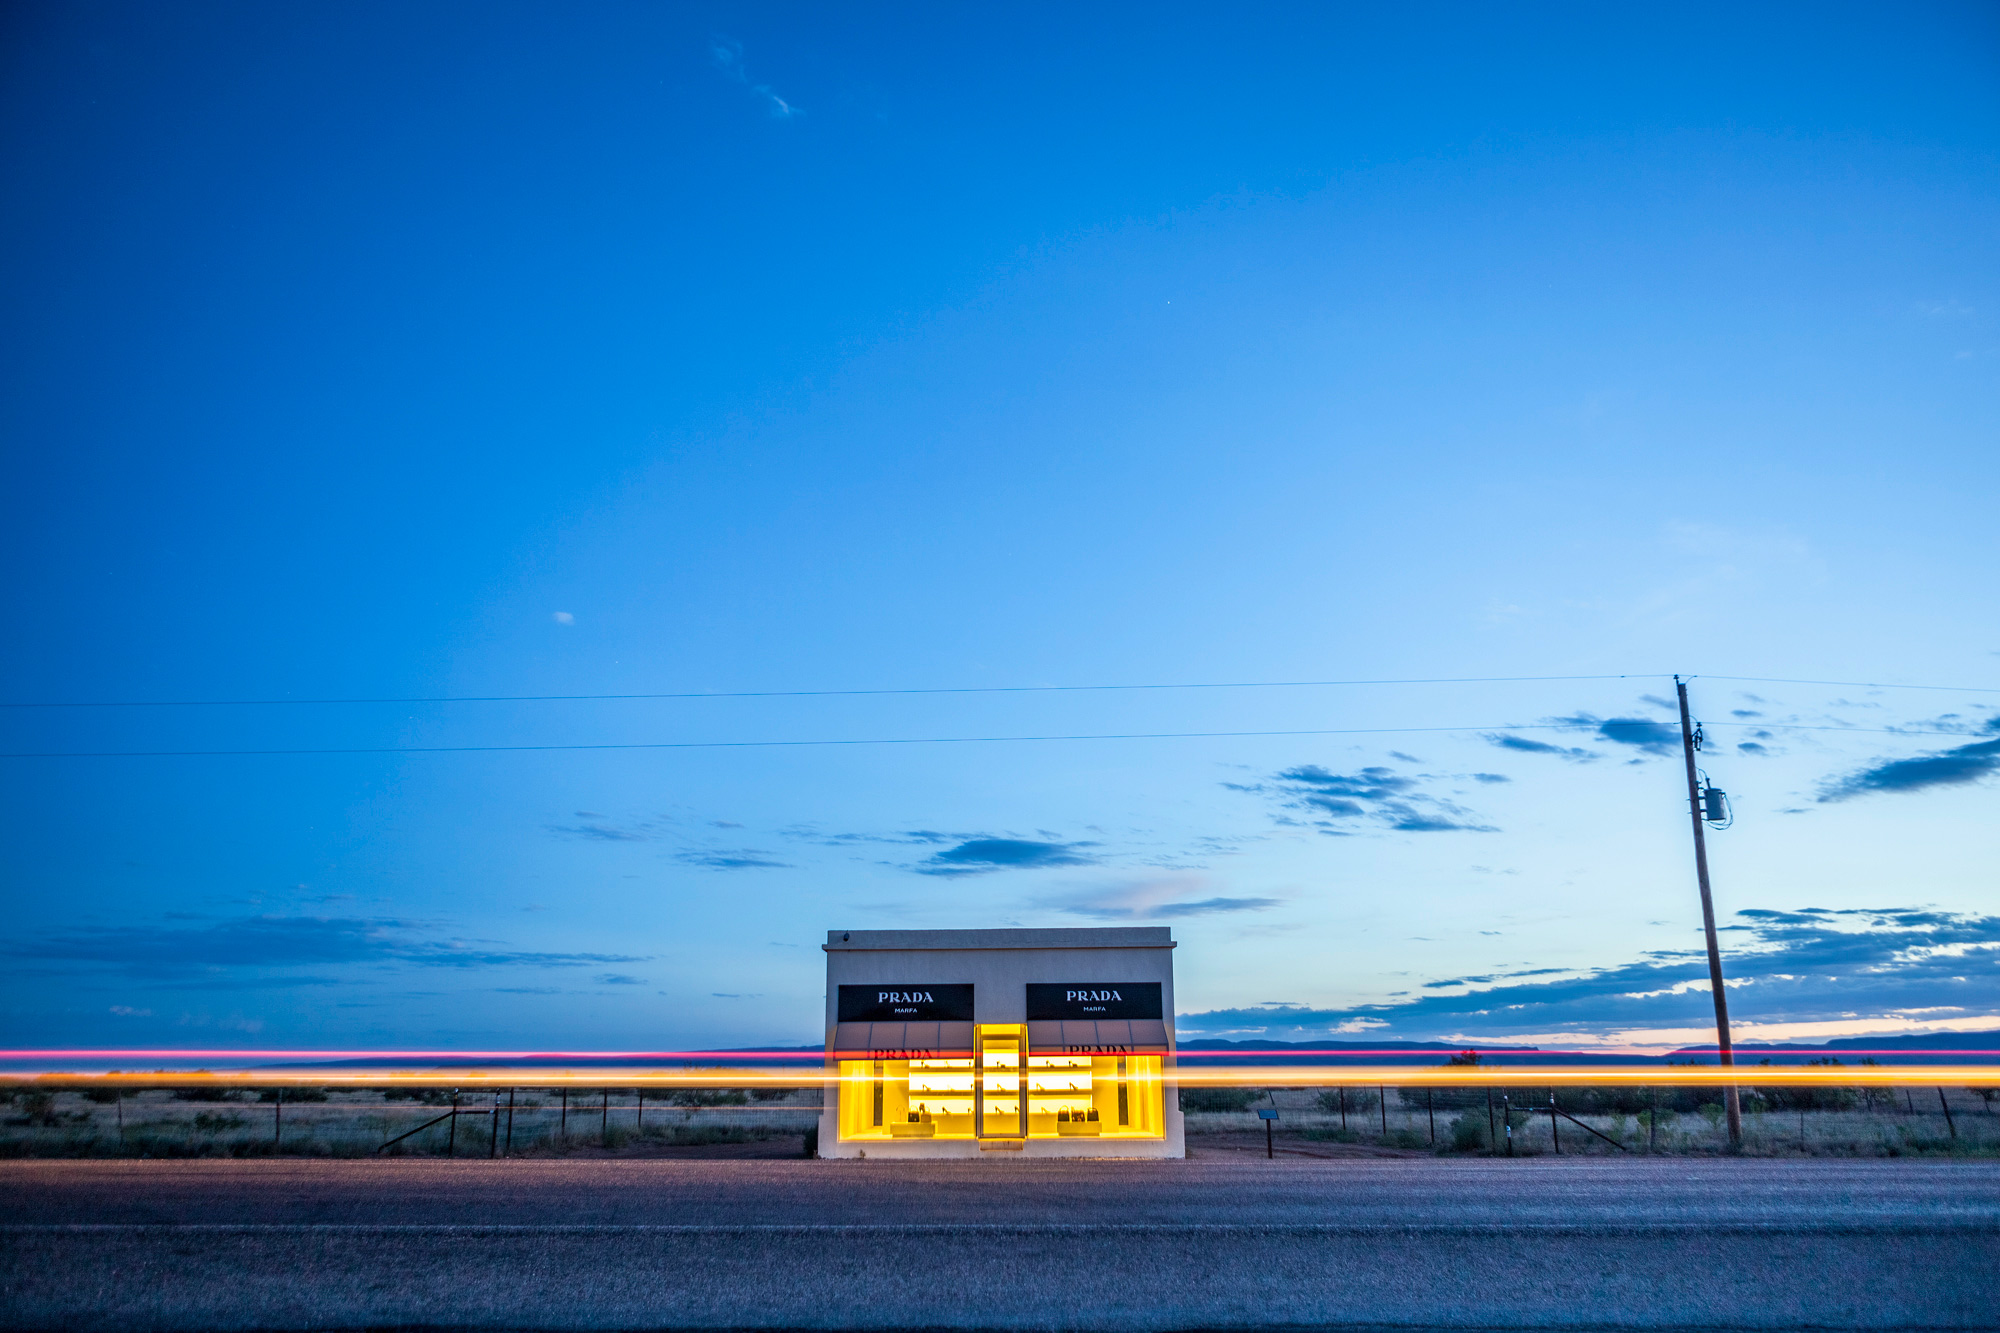 Prada Marfa in West Texas